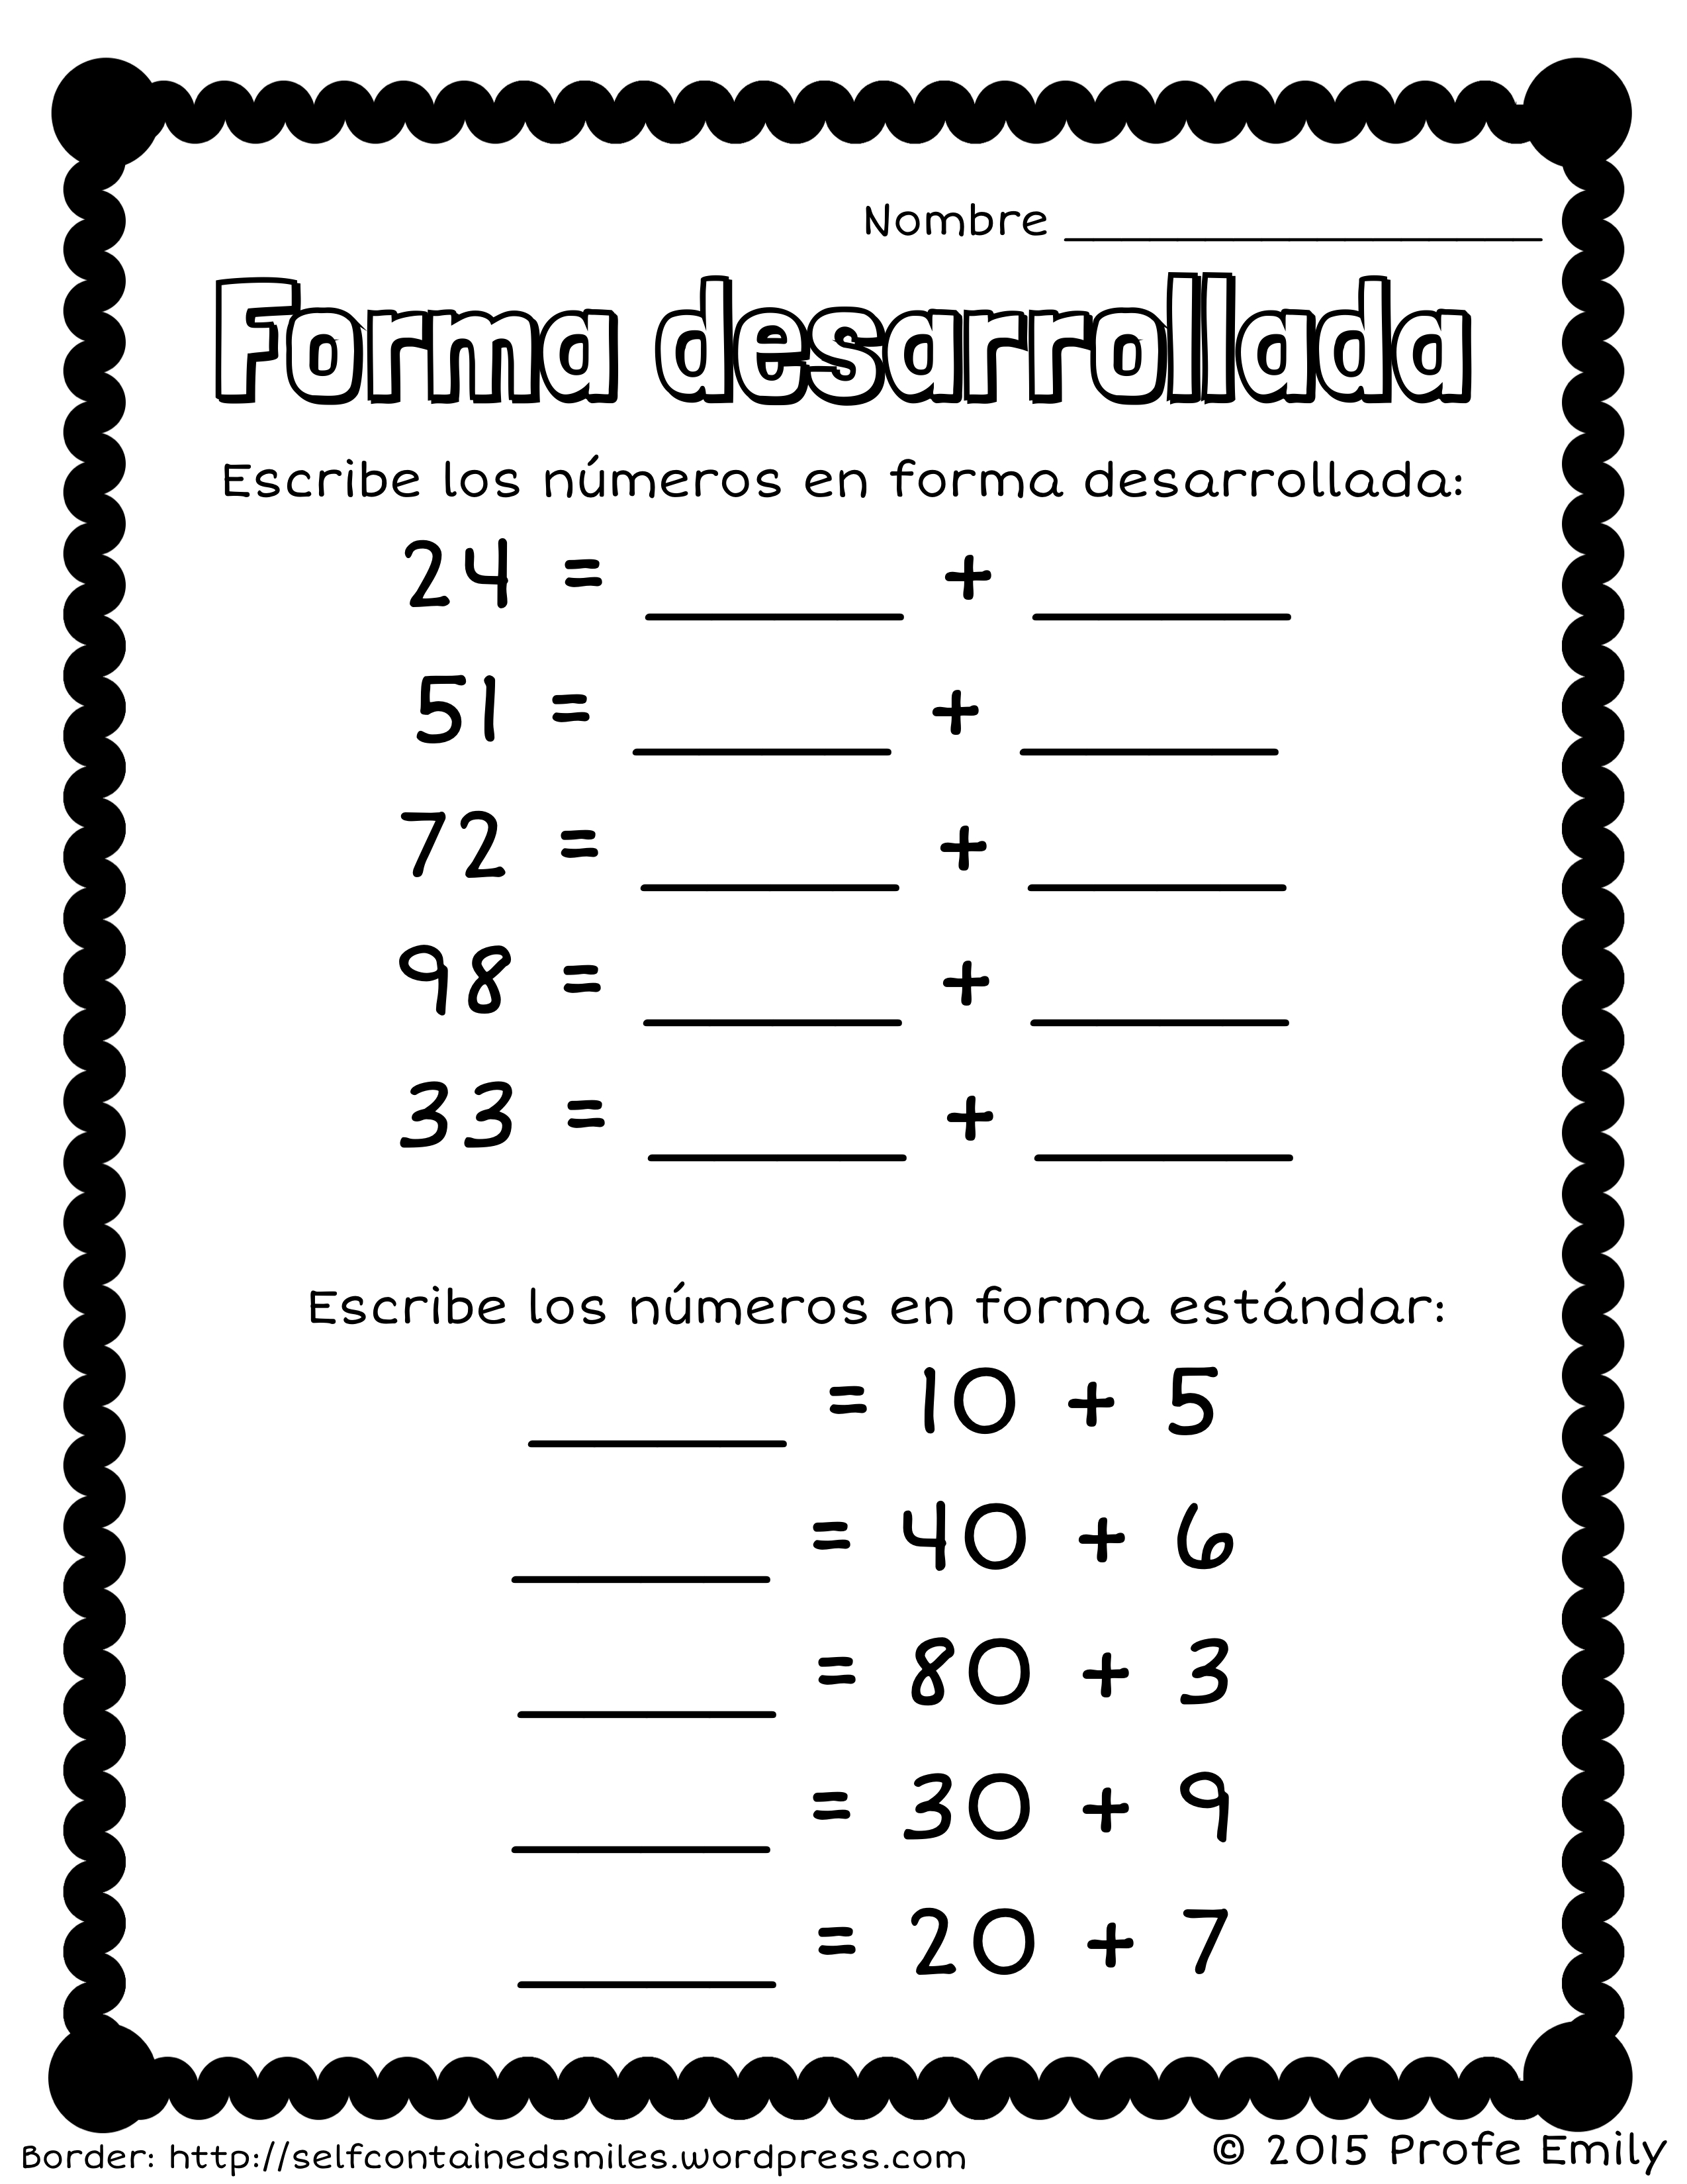 Freebie! Forma Desarrollada. Quick Place Value Worksheet To Review - Free Printable Place Value Chart In Spanish